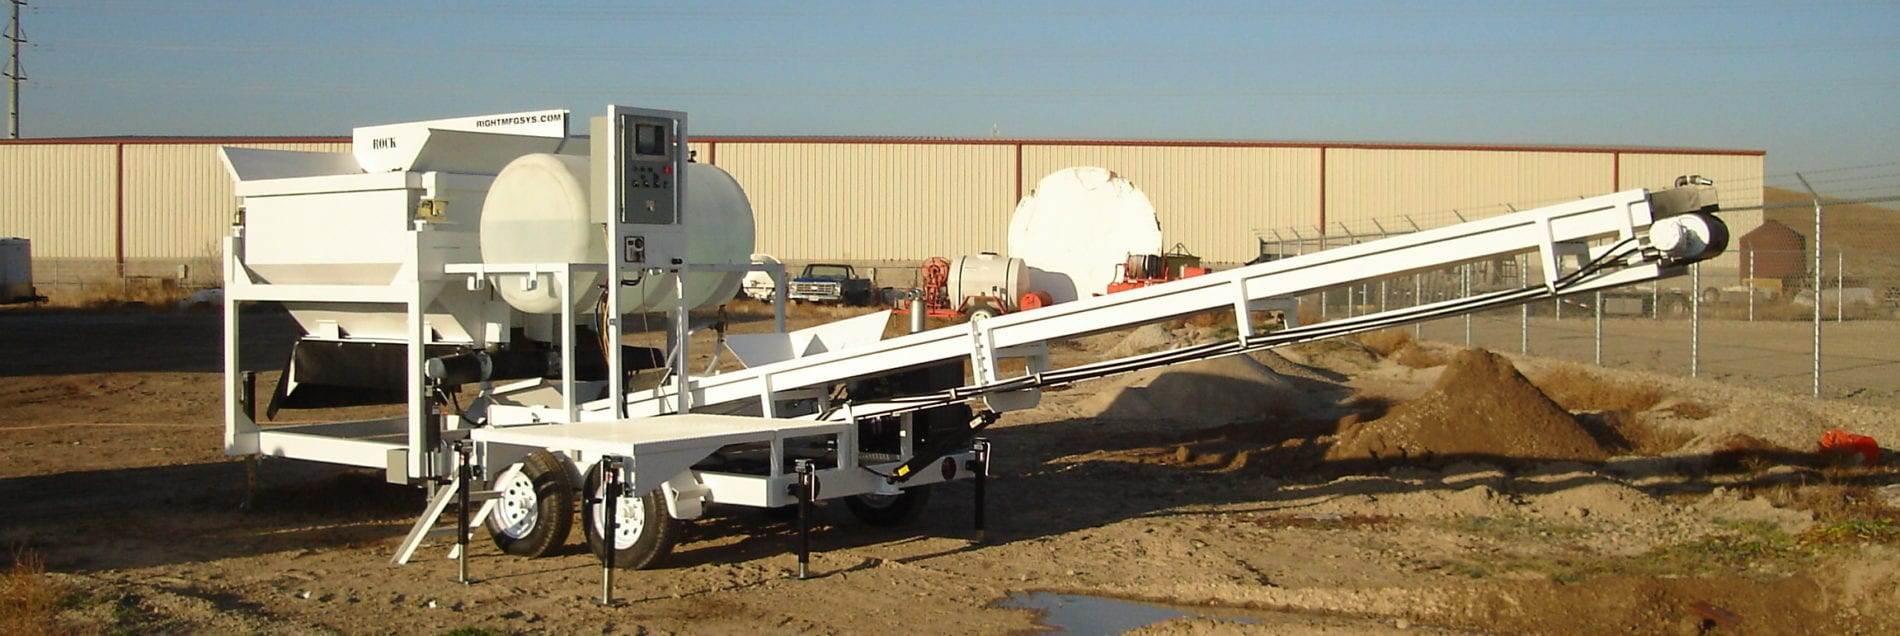 Portable Concrete Batching Plant 2CL-5-2 Extended Conveyor Lowered